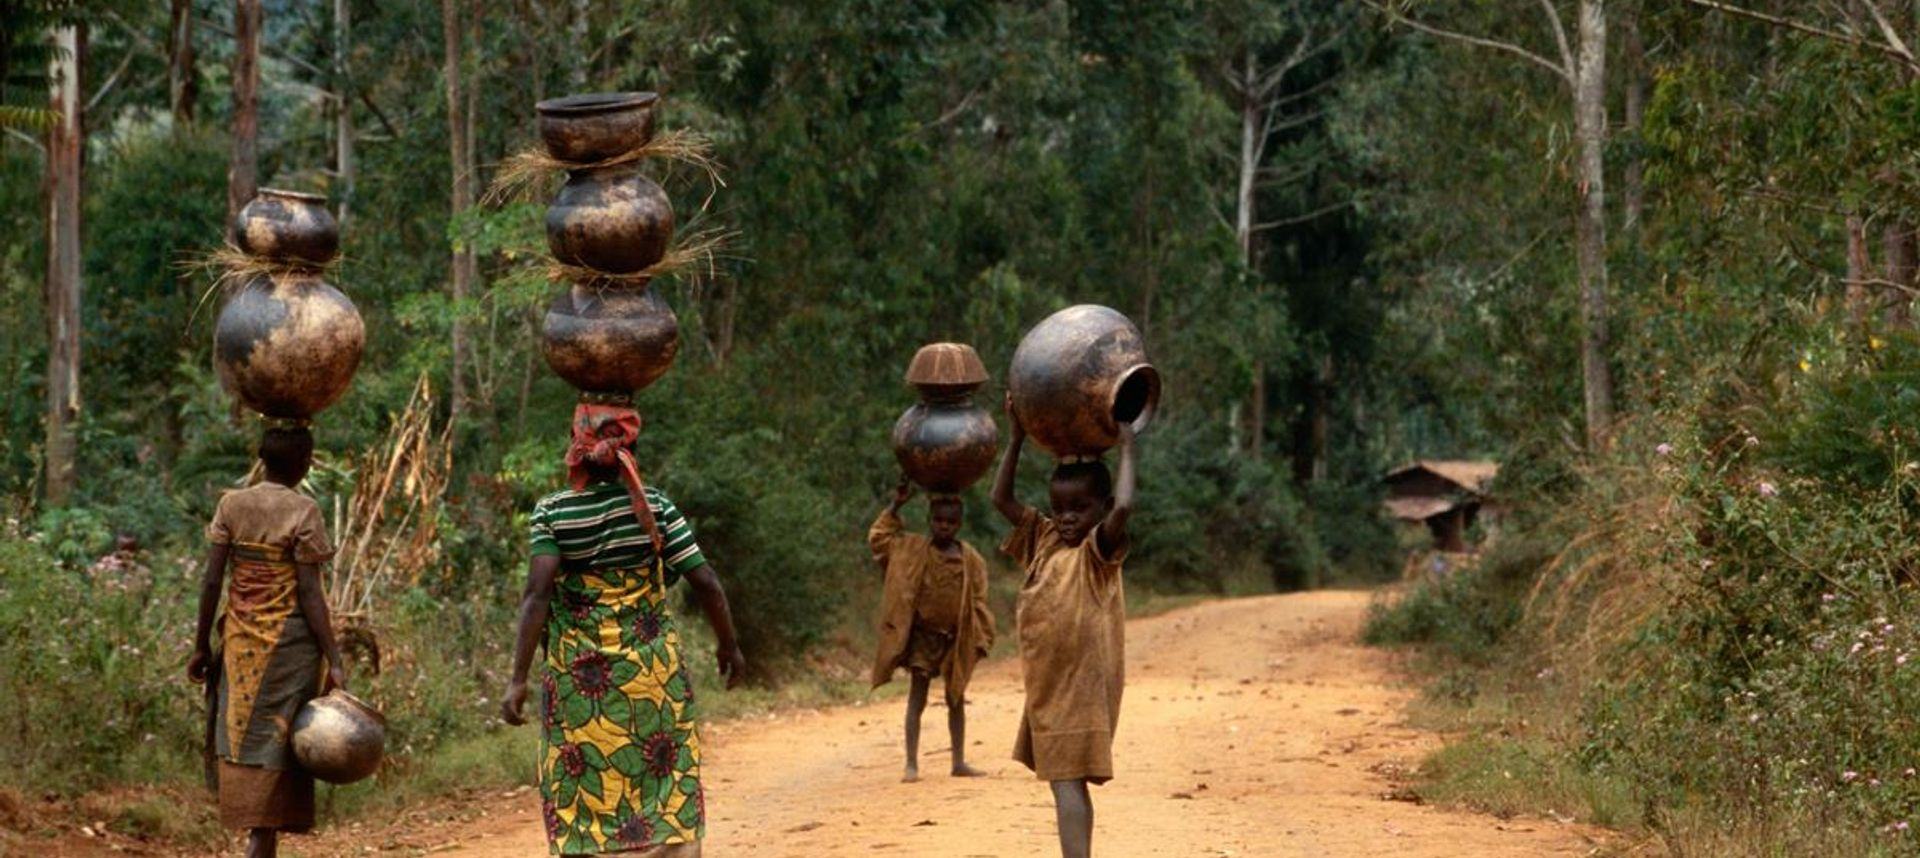 Burundi, Samburu women with traditional jewelery(dreamstime.com)